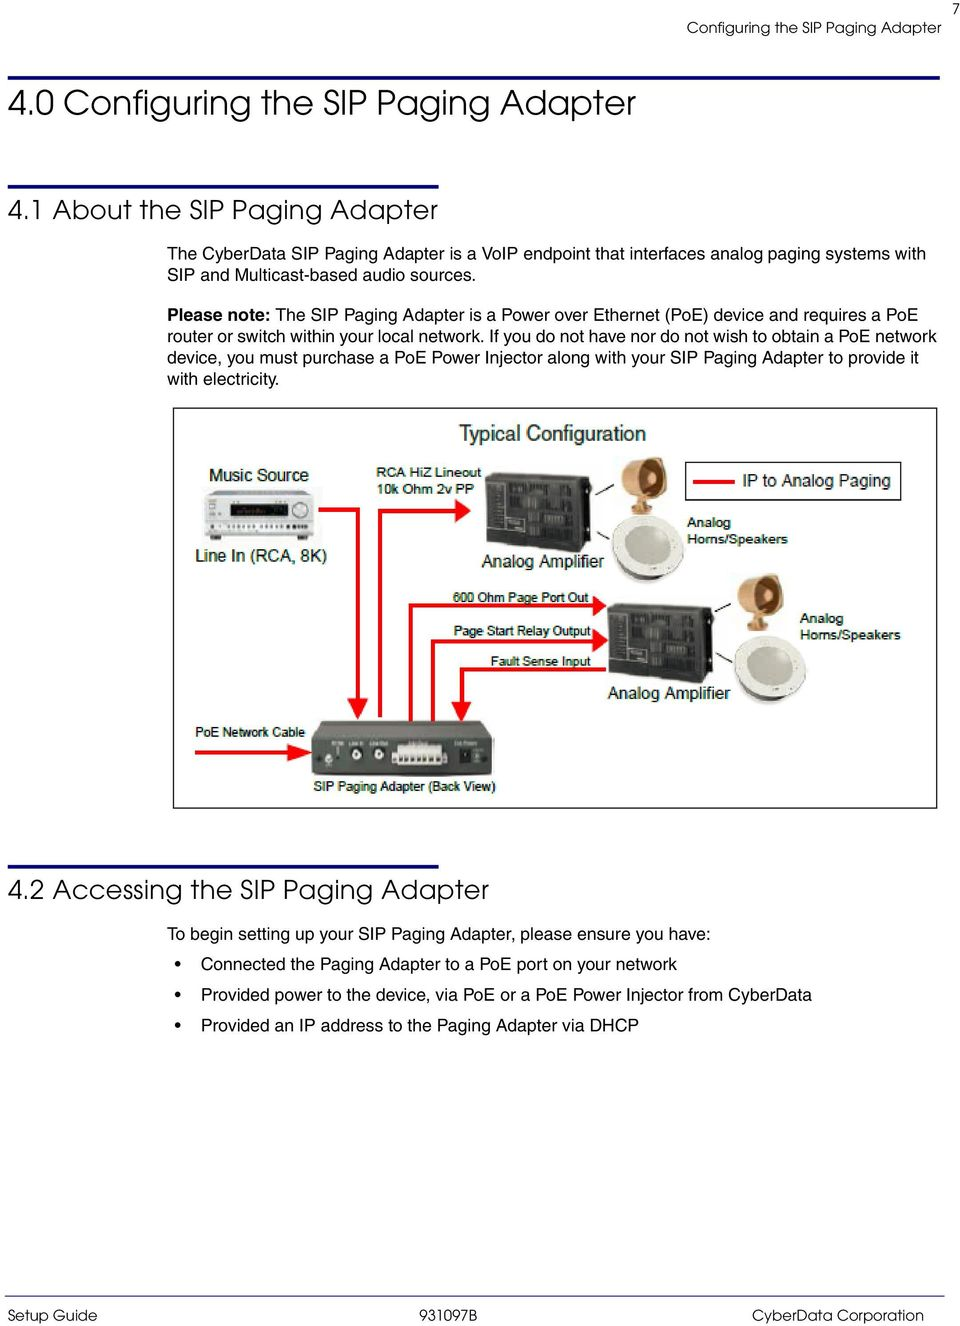 Please note: The SIP Paging Adapter is a Power over Ethernet (PoE) device and requires a PoE router or switch within your local network.